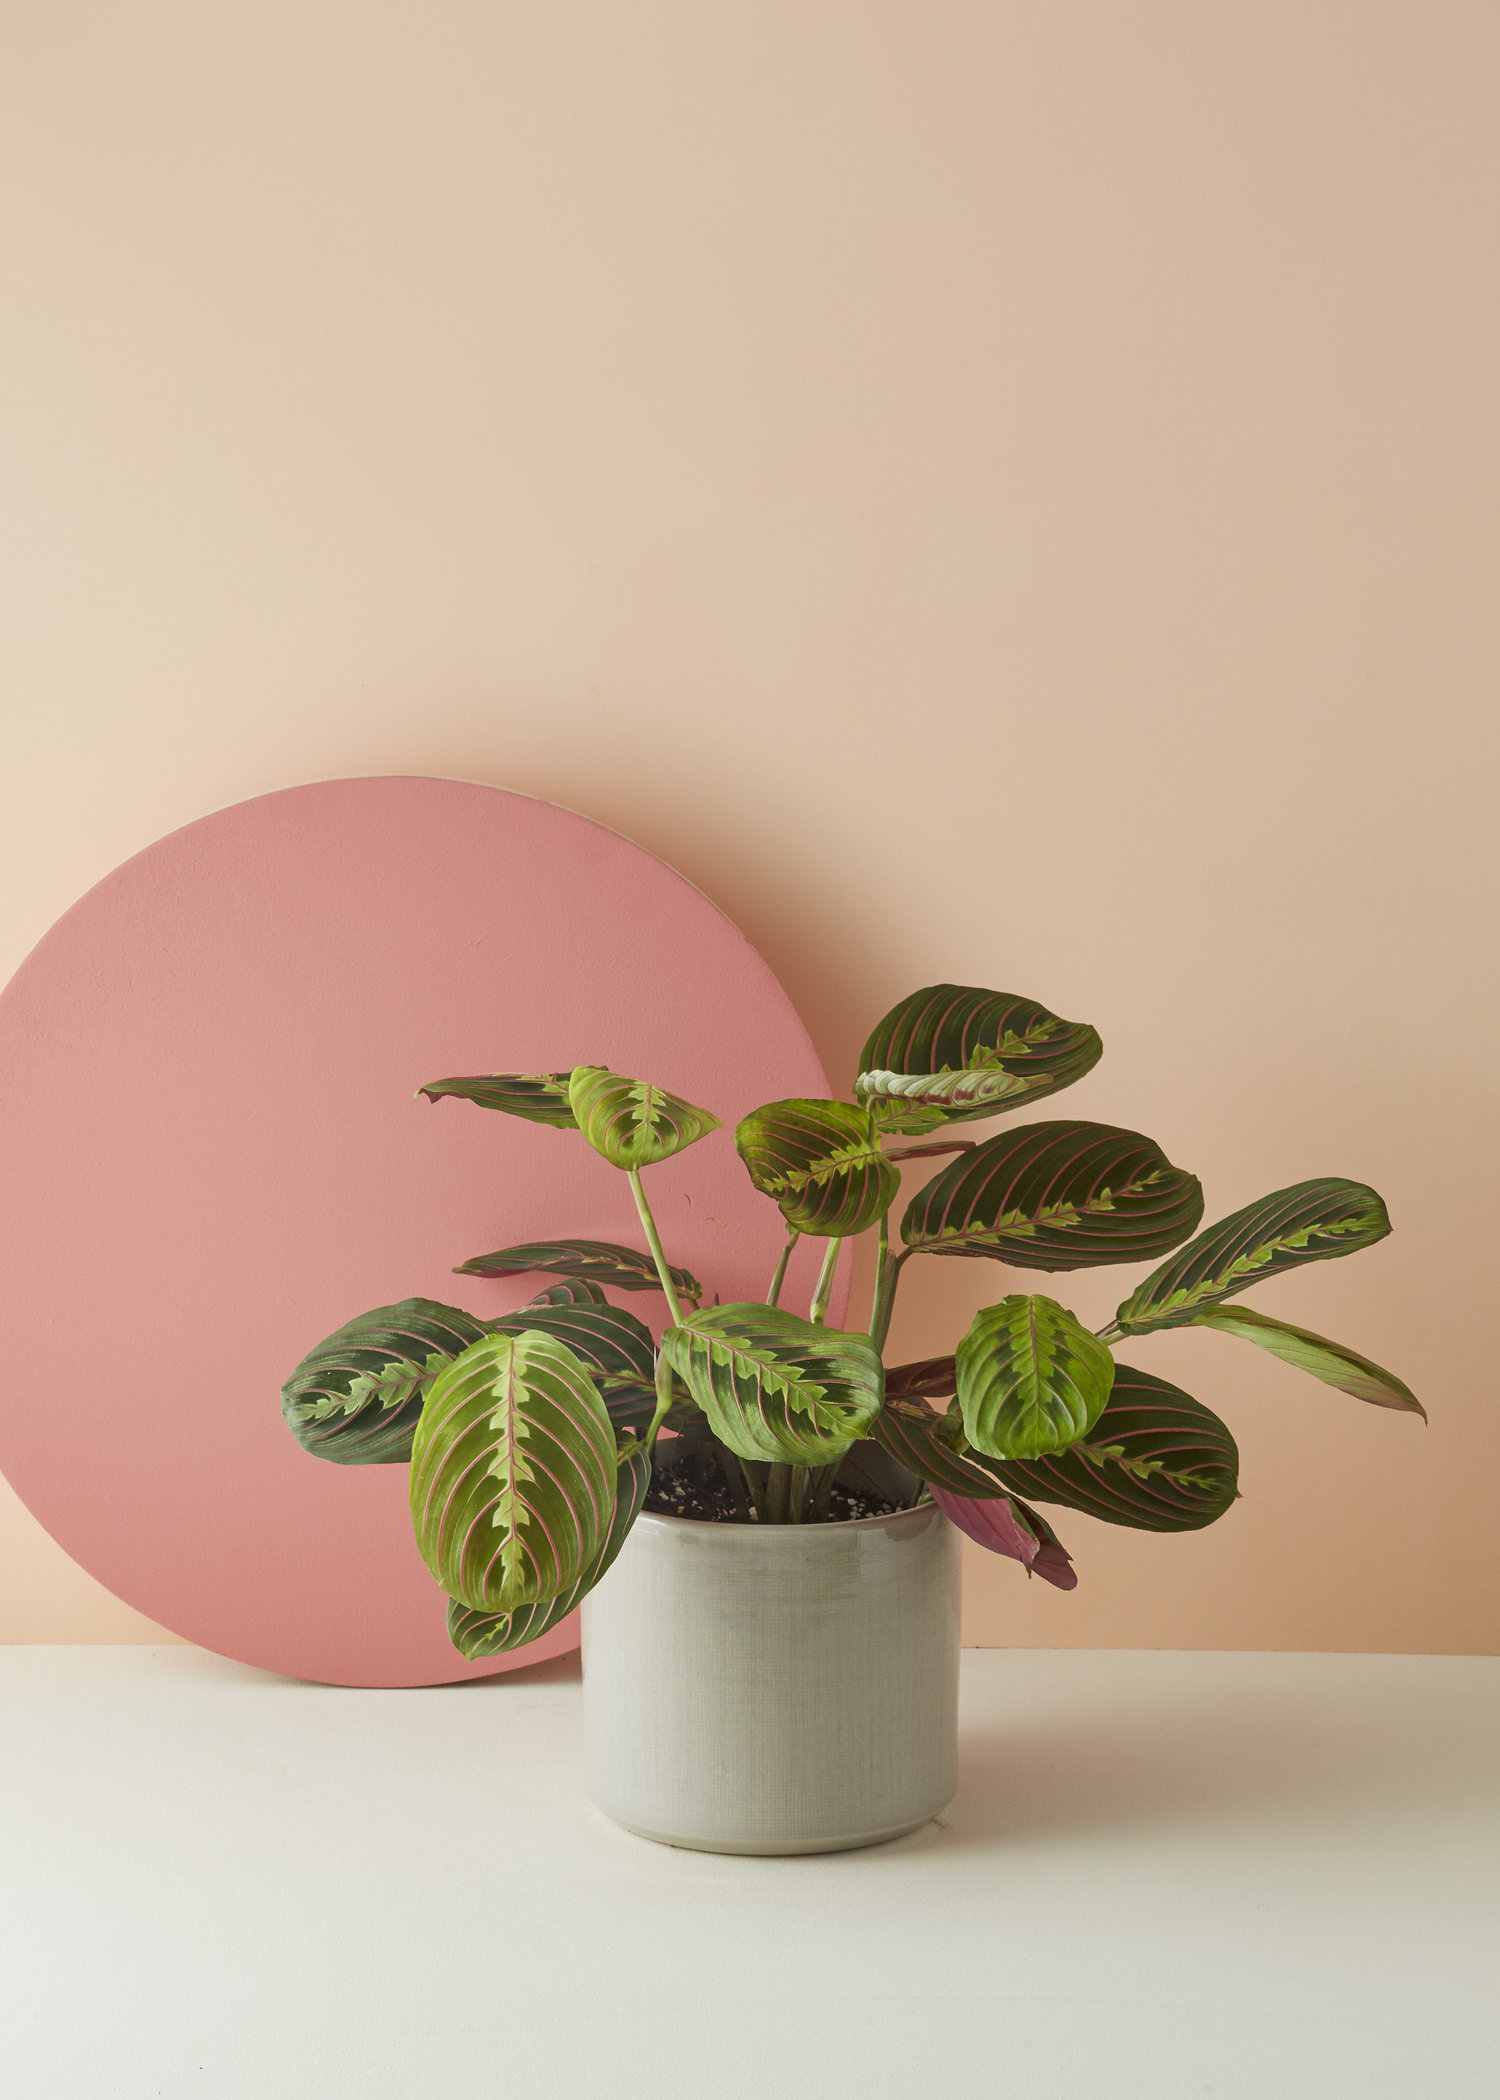 Weird, Wonderful Houseplants | NUVO on perennials with leaves, weeds with leaves, vegetables with leaves, seeds with leaves, animals with leaves, flowers with leaves, birds with leaves, bonsai with leaves, mushrooms with leaves, palms with leaves, bamboo with leaves, gardens with leaves, vines with leaves, succulents with leaves, marigolds with leaves, spring with leaves, pumpkins with leaves, lilies with leaves, trees with leaves, berries with leaves,